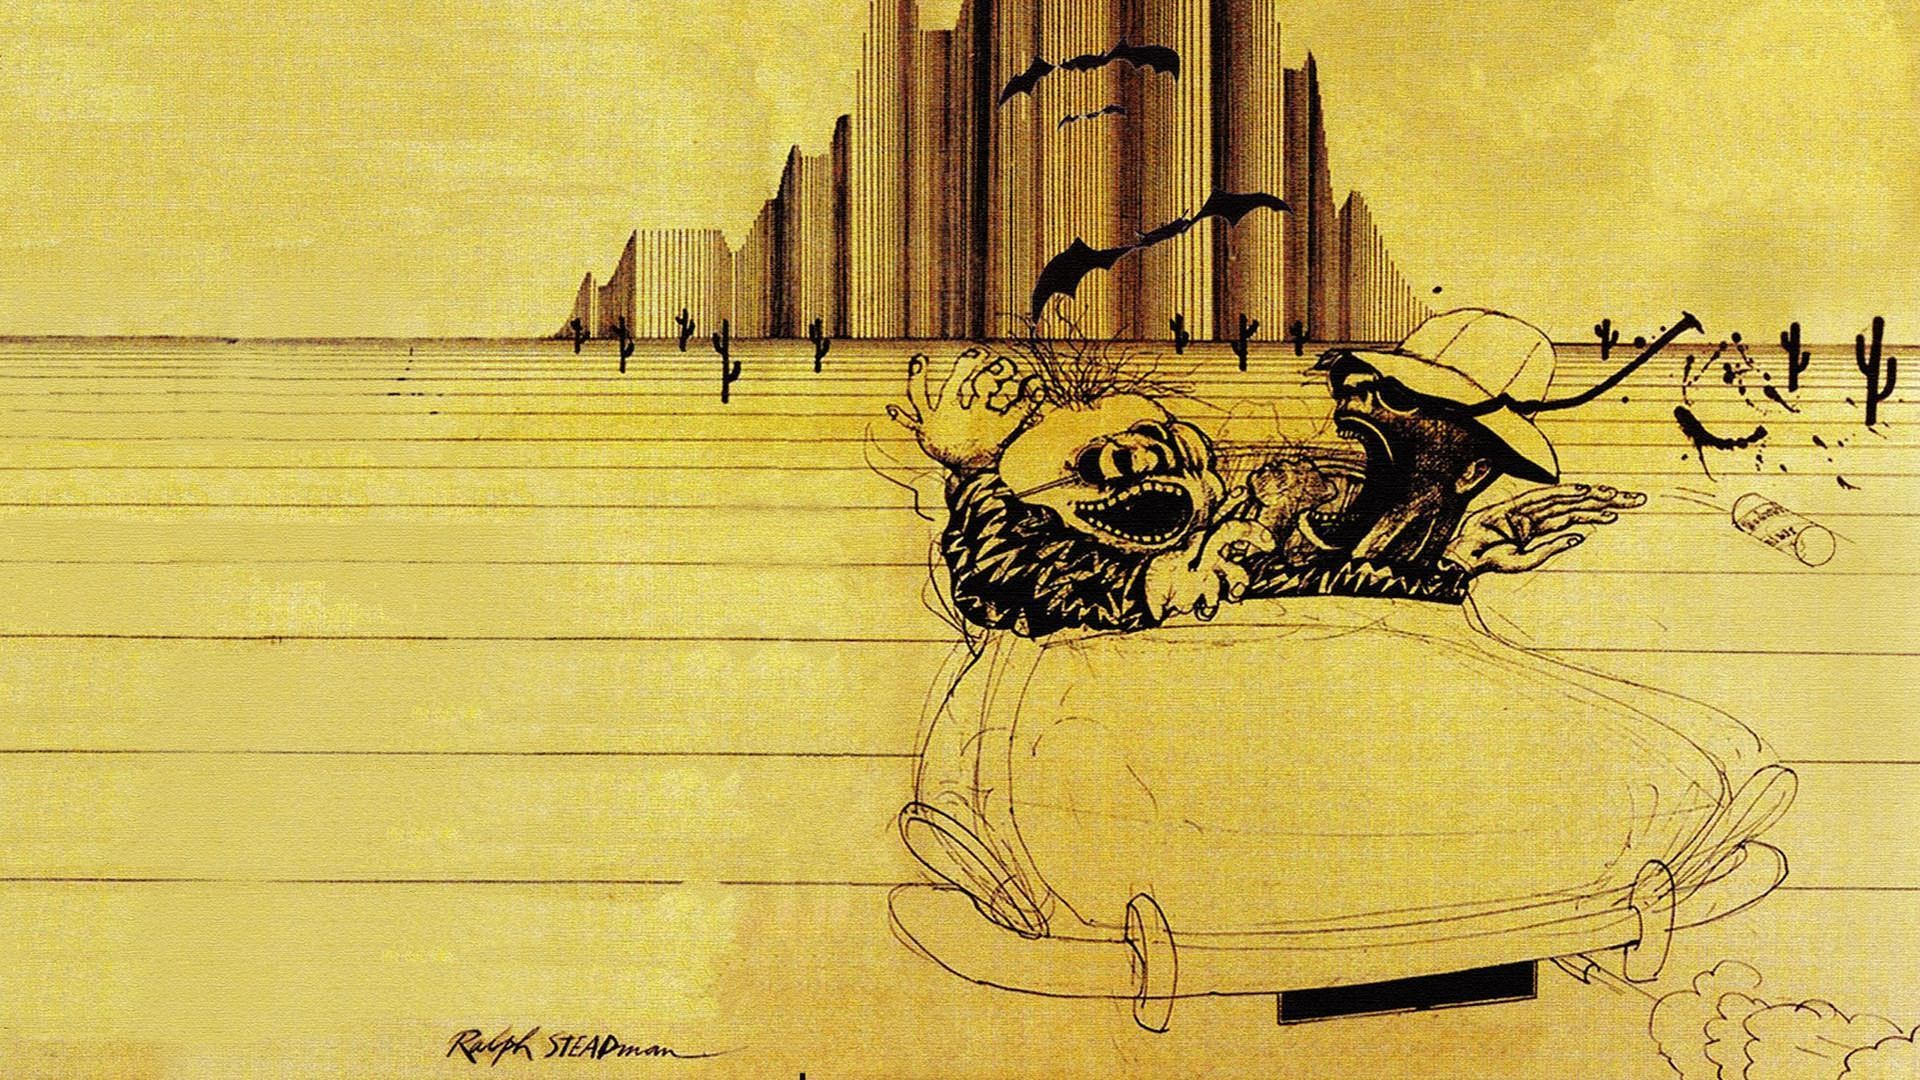 Res: 1920x1080, Fear and Loathing in Las Vegas images Ralph Steadman illustration HD  wallpaper and background photos